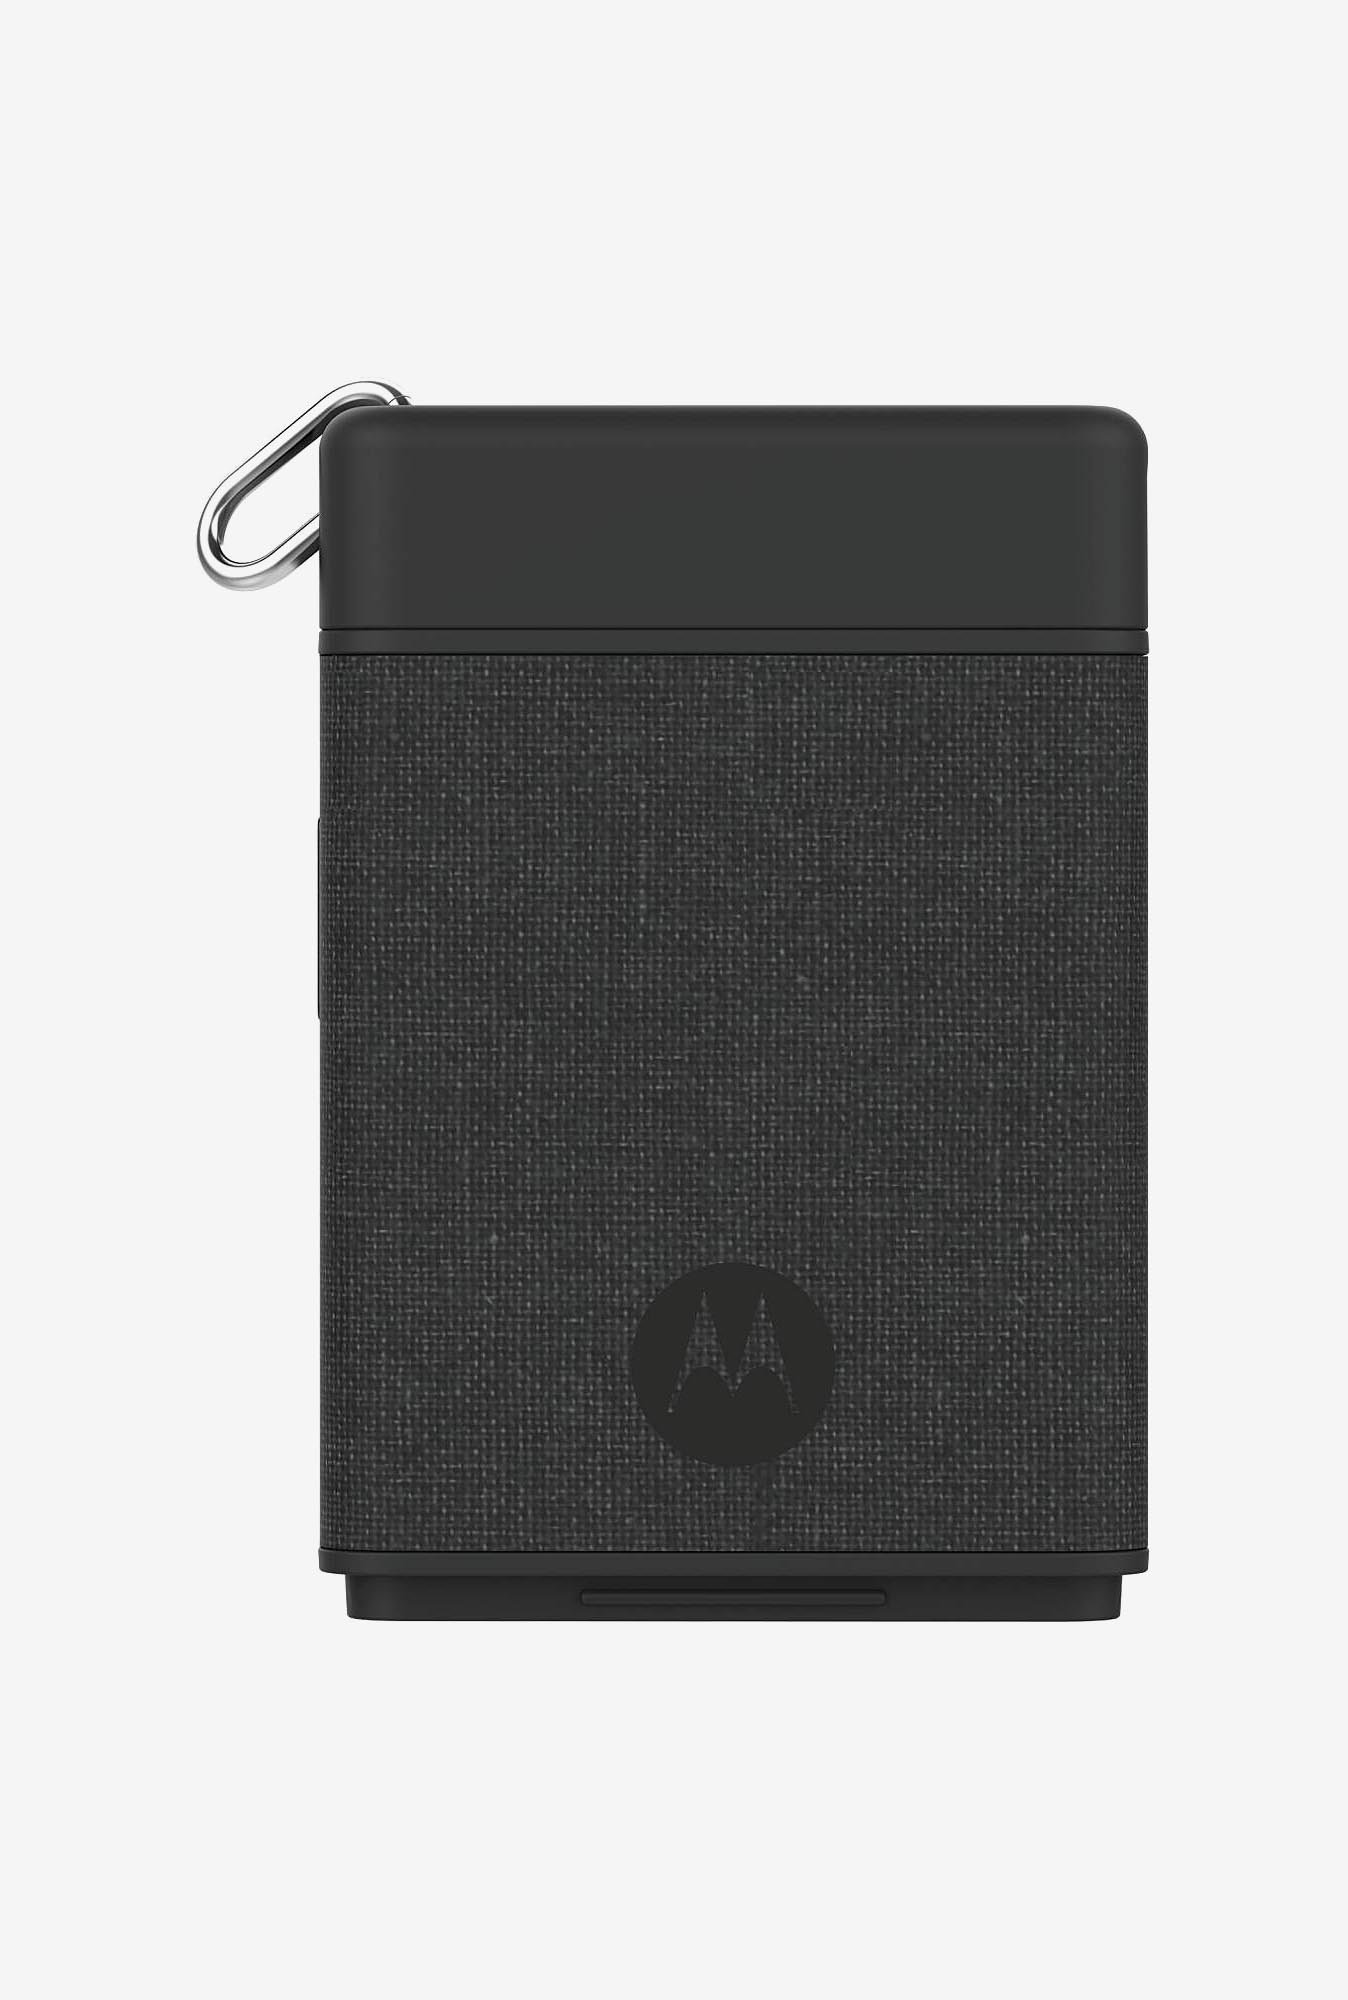 Motorola P1500 1500 mAh Power Bank (Black)